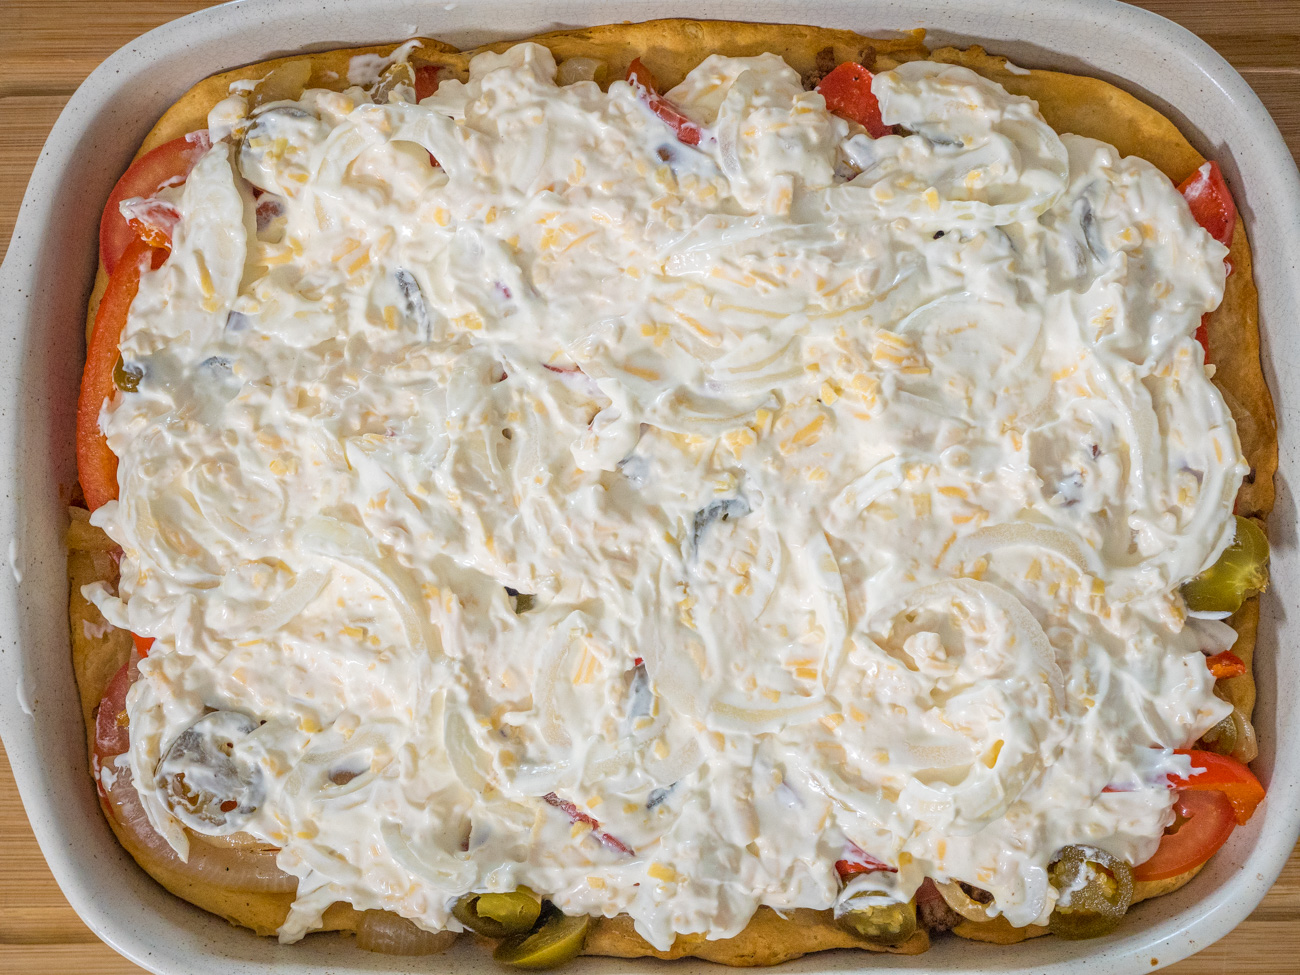 Layer the beef on top of the biscuit crust, followed by the sliced tomatoes, and then the pepper and onion mixture, adding jalapeños on top of that. Add the sour cream mixture on top of the vegetables and top with remaining cheese.